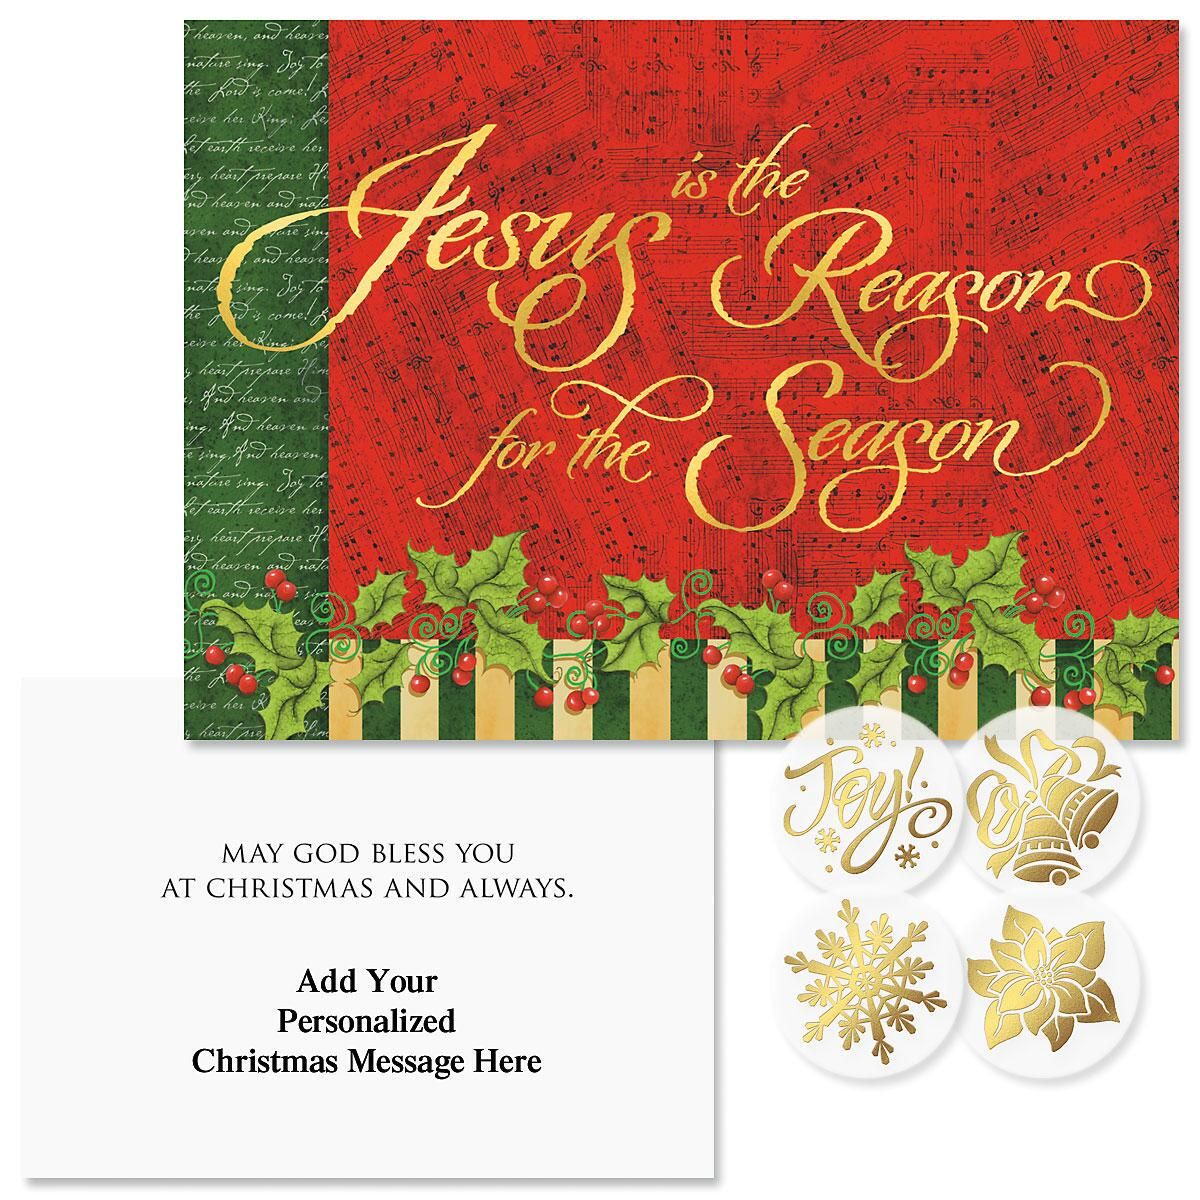 Joyful Season Christmas Cards